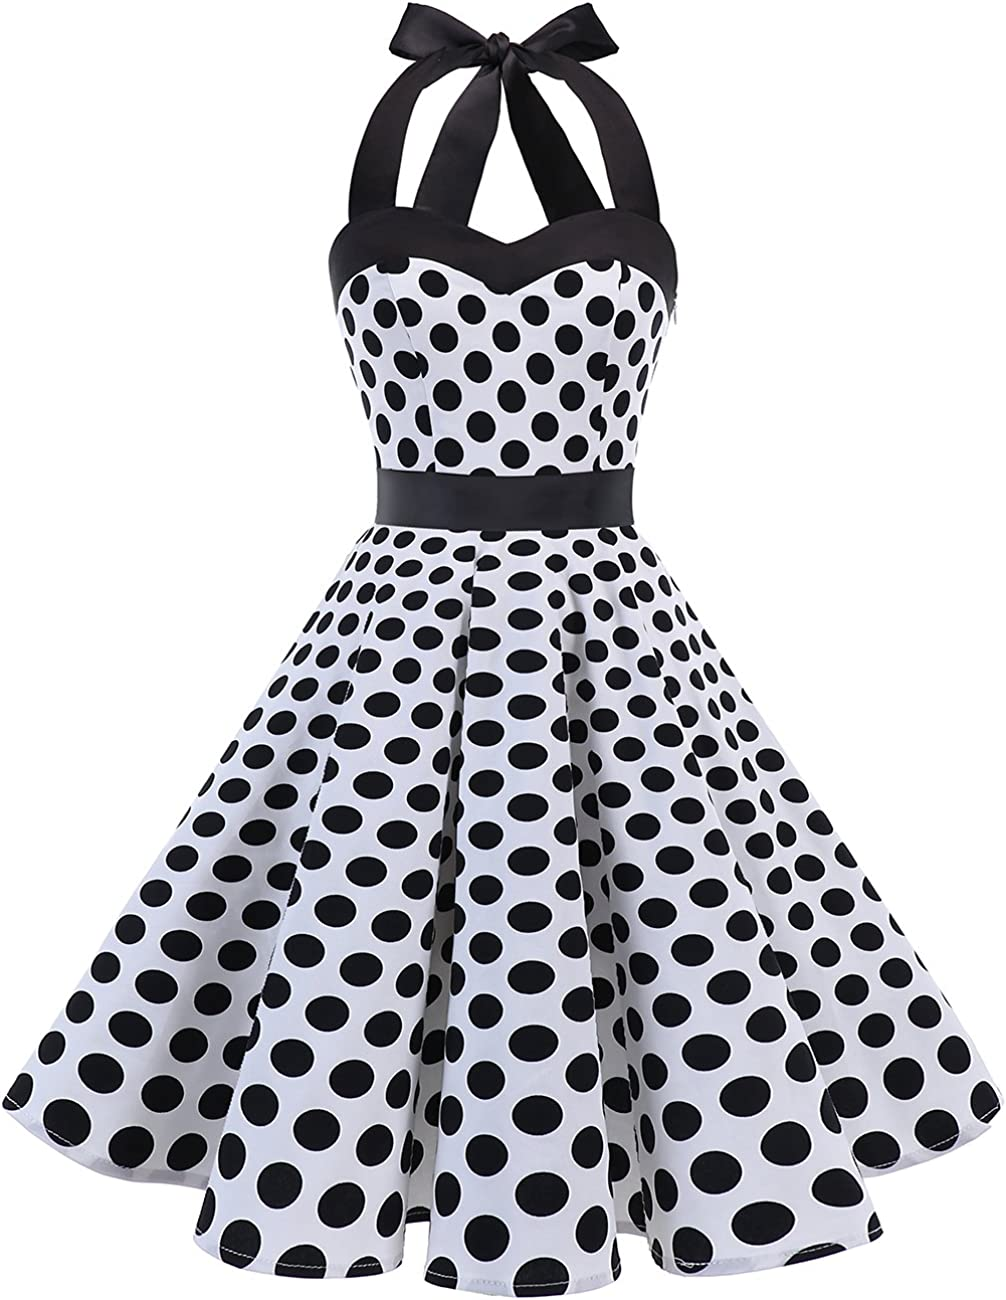 TALLA XS. Dresstells® Halter 50s Rockabilly Polka Dots Audrey Dress Retro Cocktail Dress White Black Dot XS